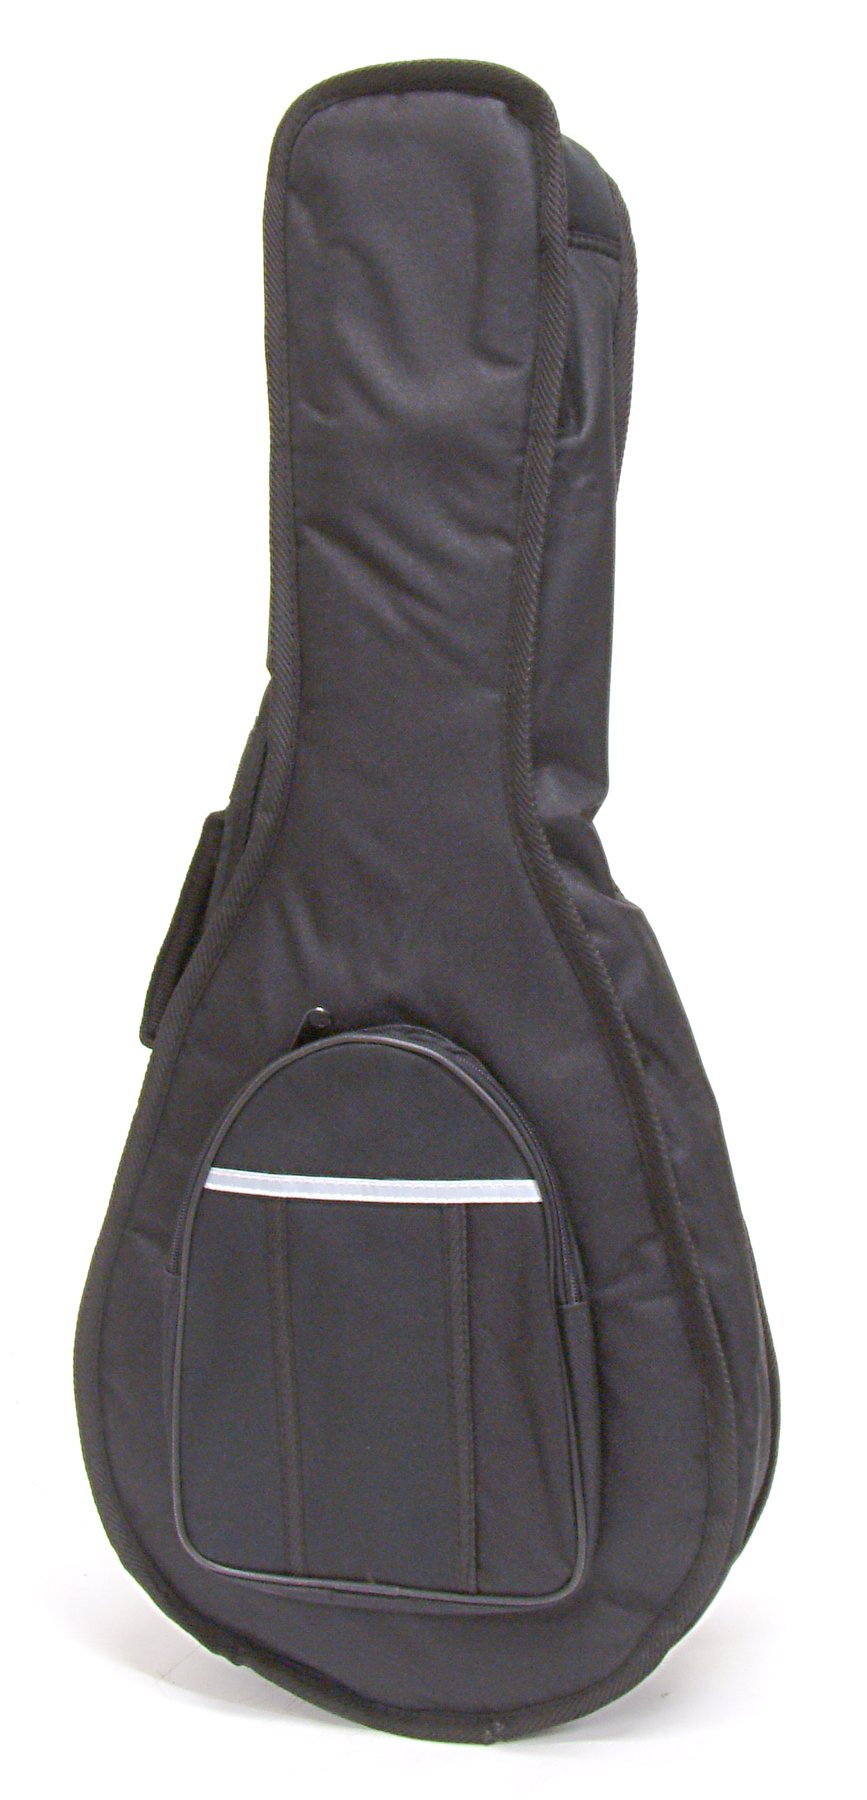 Deluxe Thick Padded Mandolin Gig Bag (soft case) - With Zippered Pouch,Back Pack Straps, and Carrying Handle